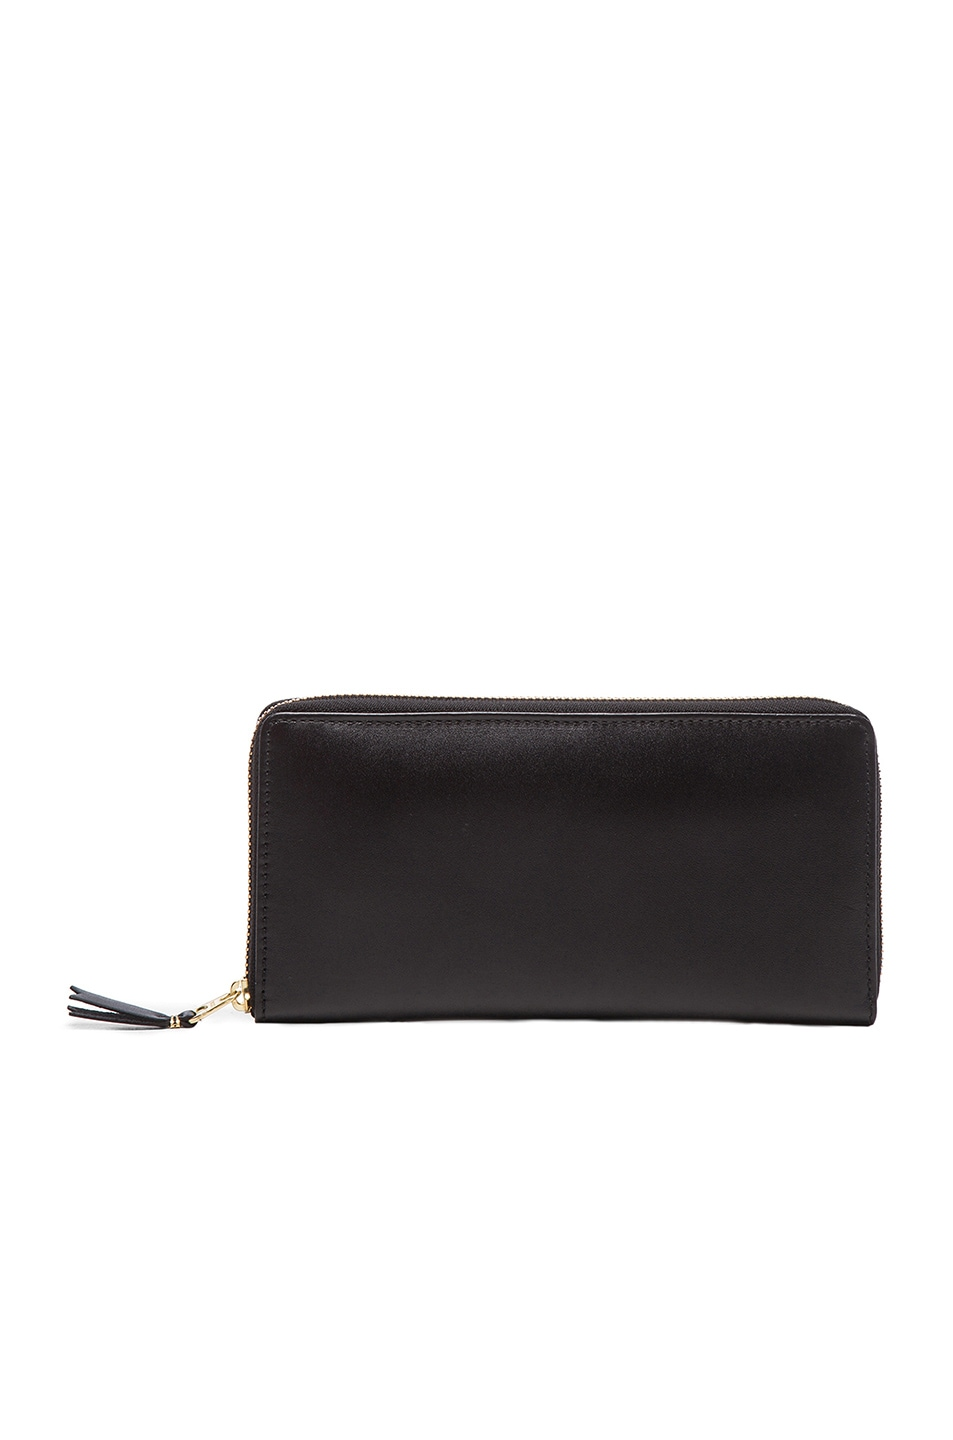 Comme Des Garcons Wallets Black Continental Wallet